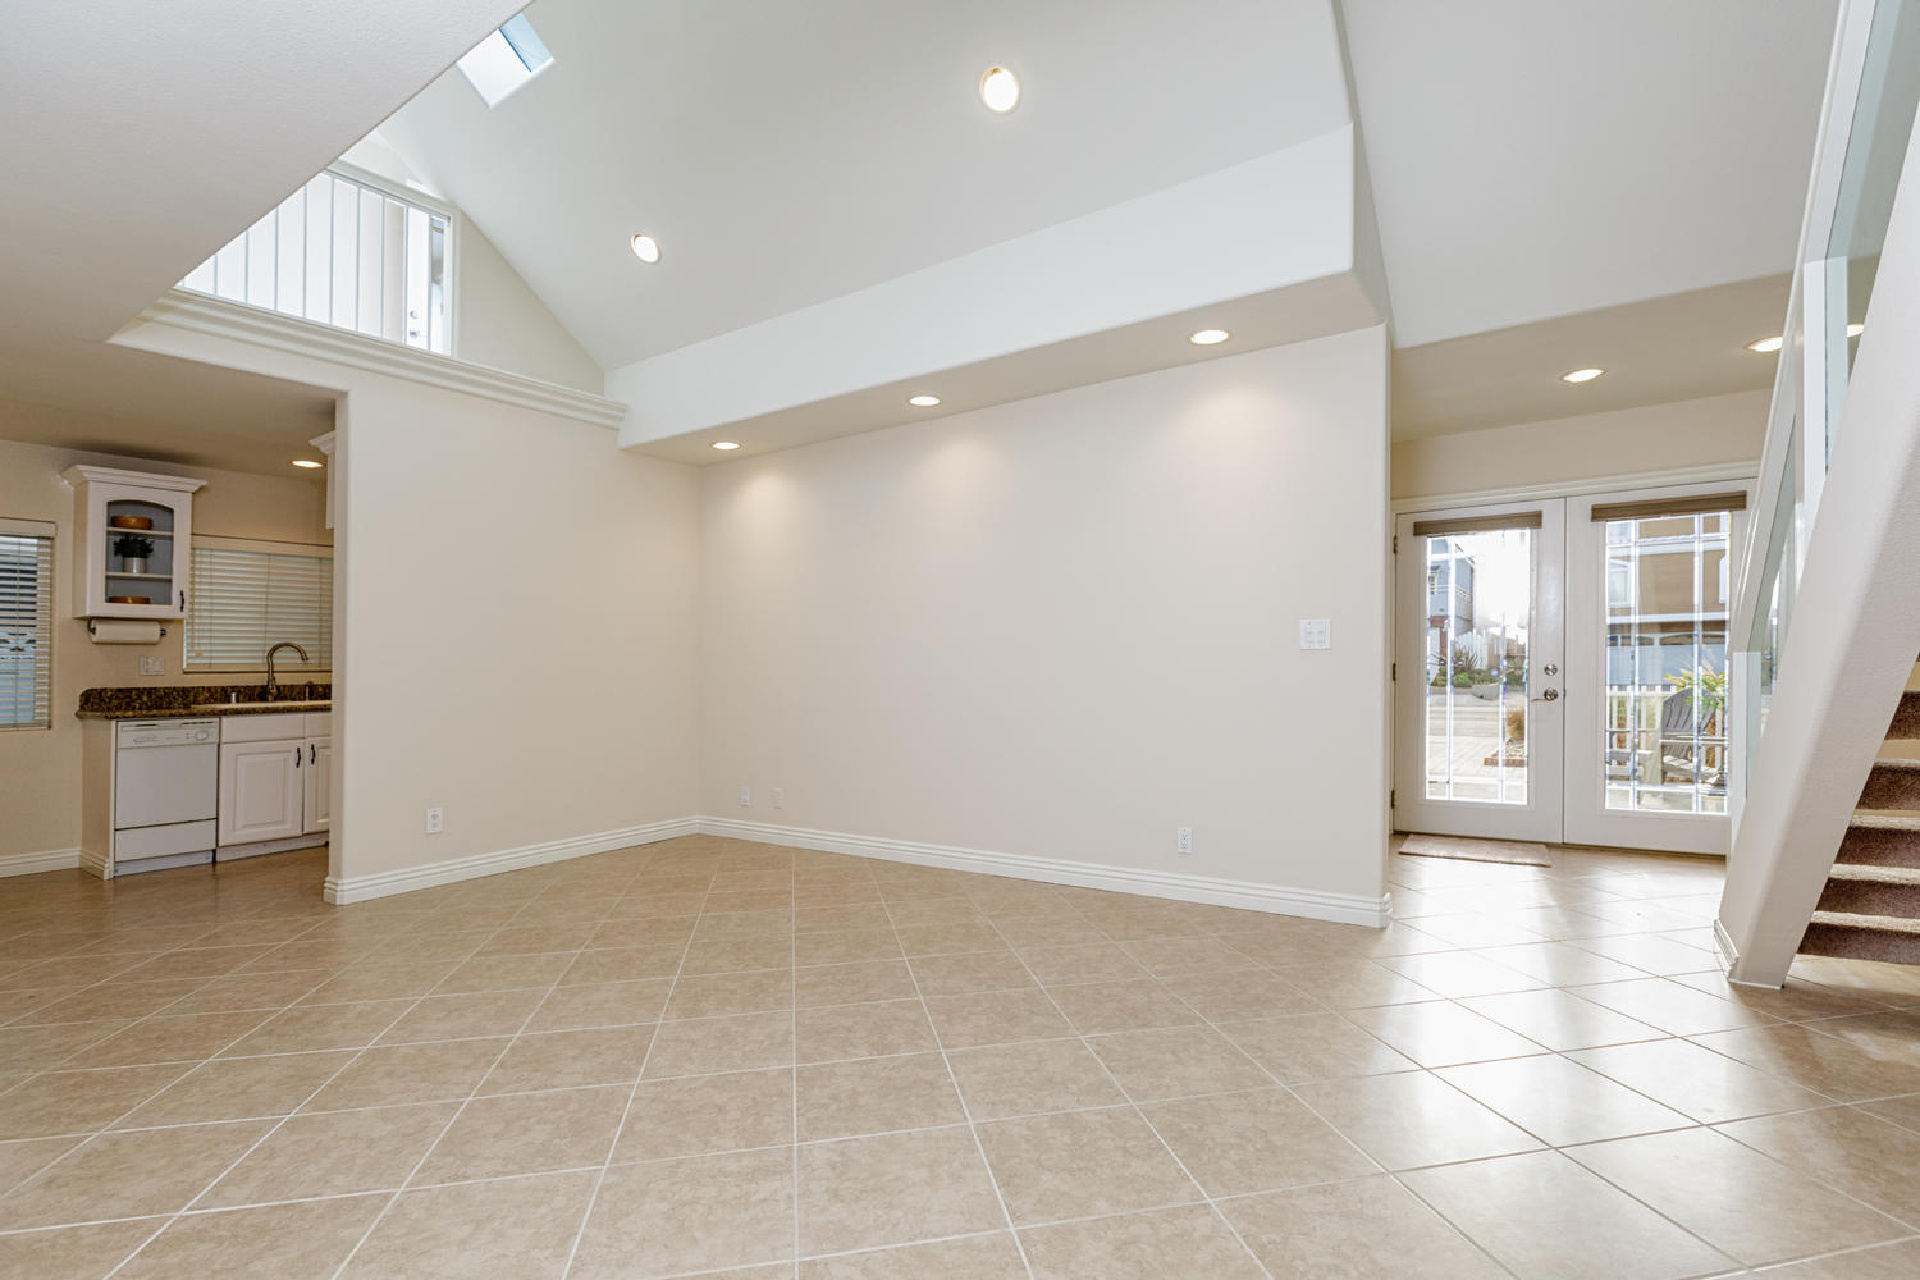 https://www.addressrealestate.com/media/images/blogs/38/2/b_3-1408-ocean-dr-oxnard-ca-93035-mls-size-004-6-living-area-to-kitchen-1500x1000-72dpi.jpg